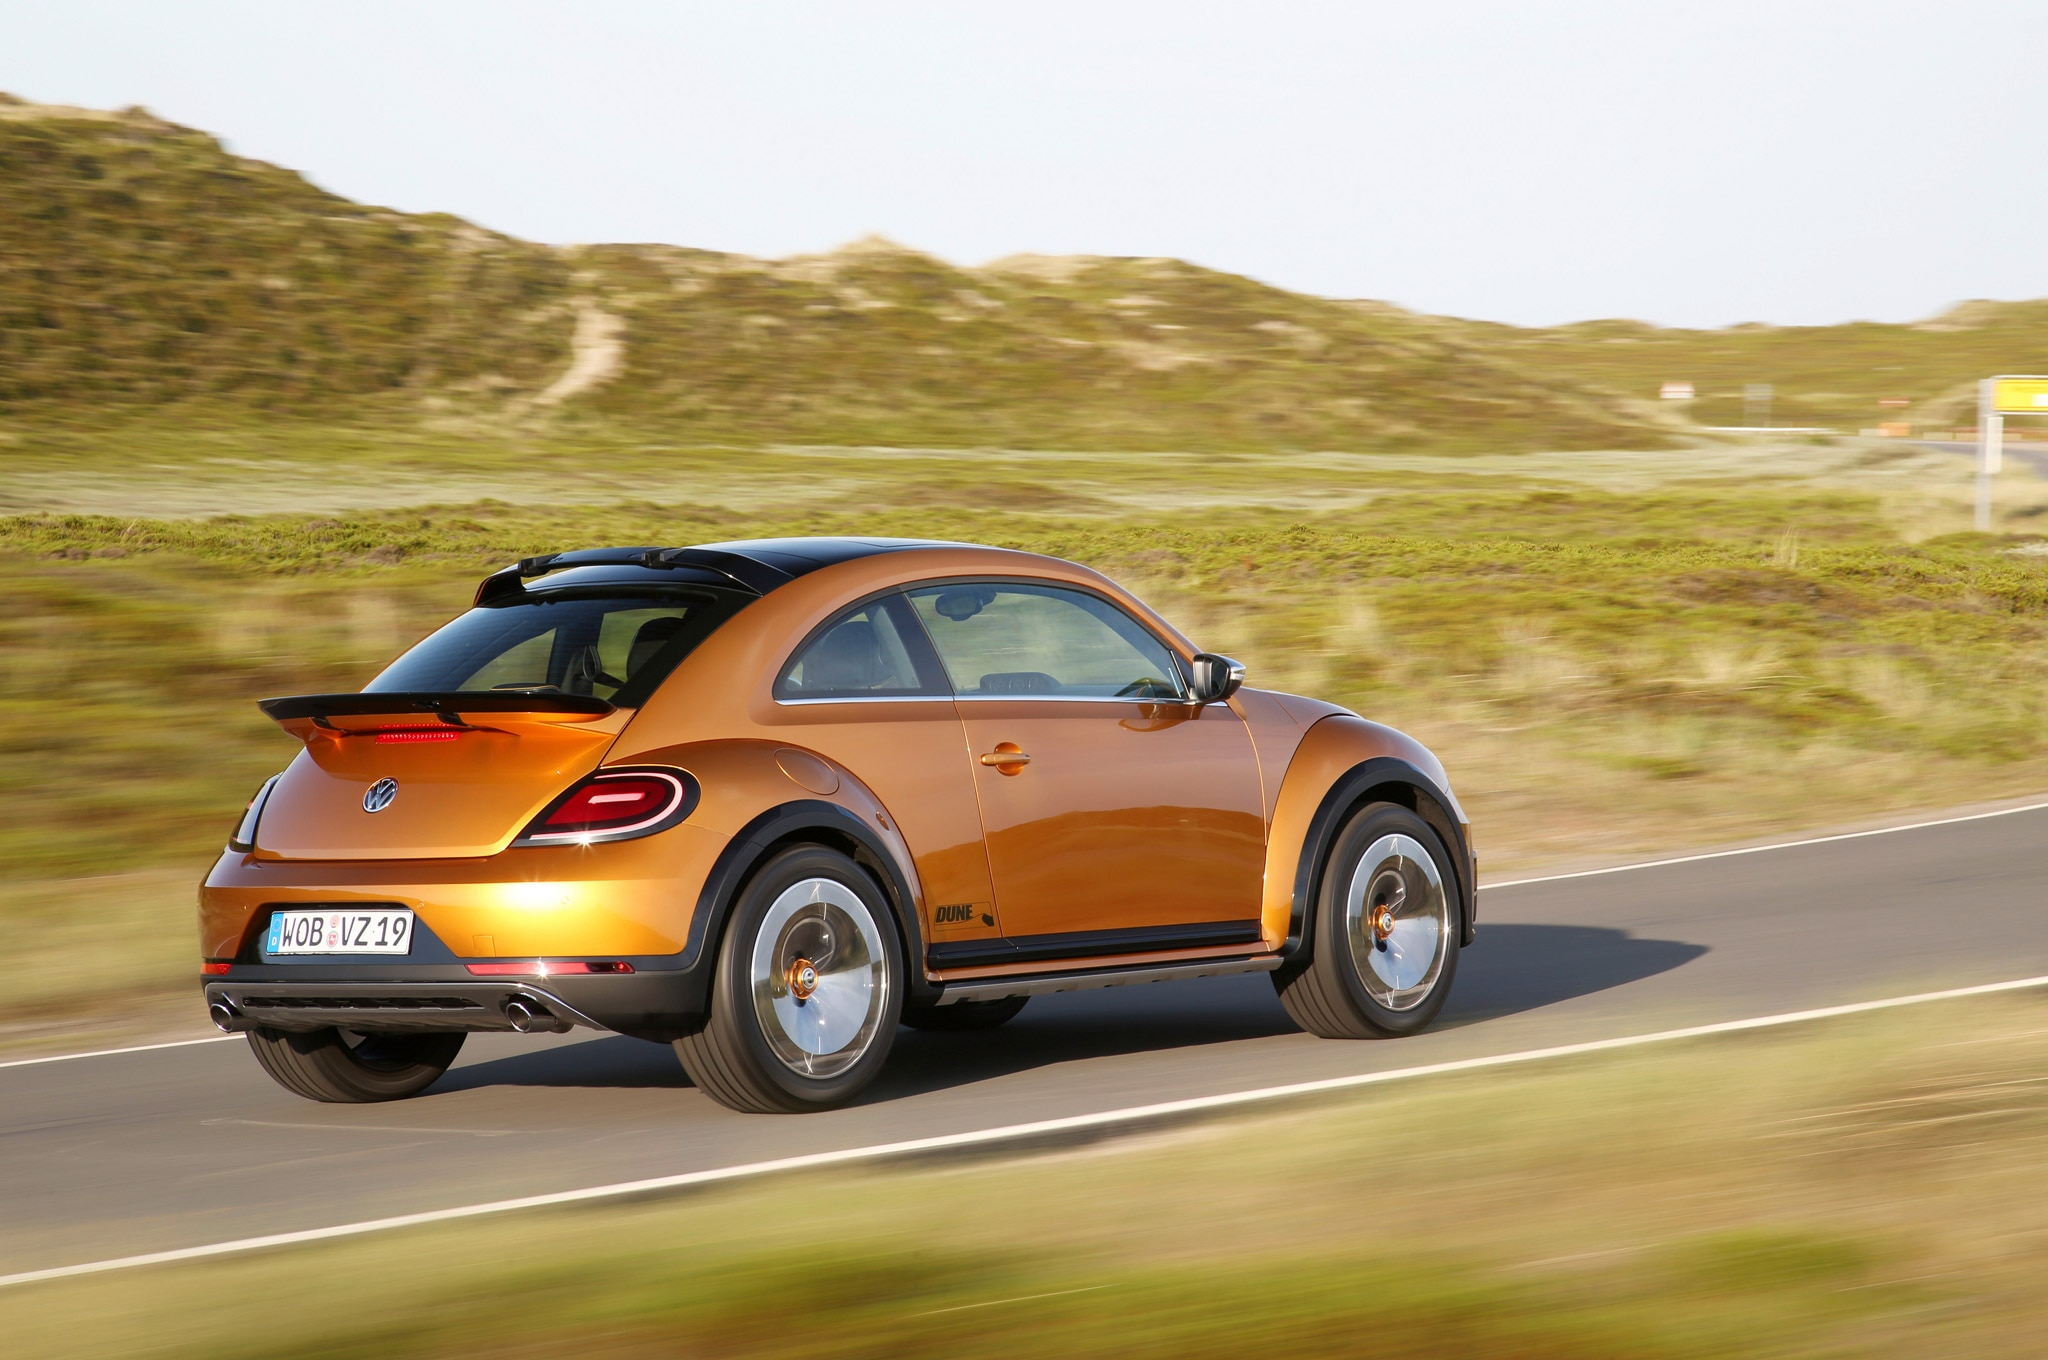 Volkswagen Beetle Dune Concept Rear Three Quarter View In Motion1